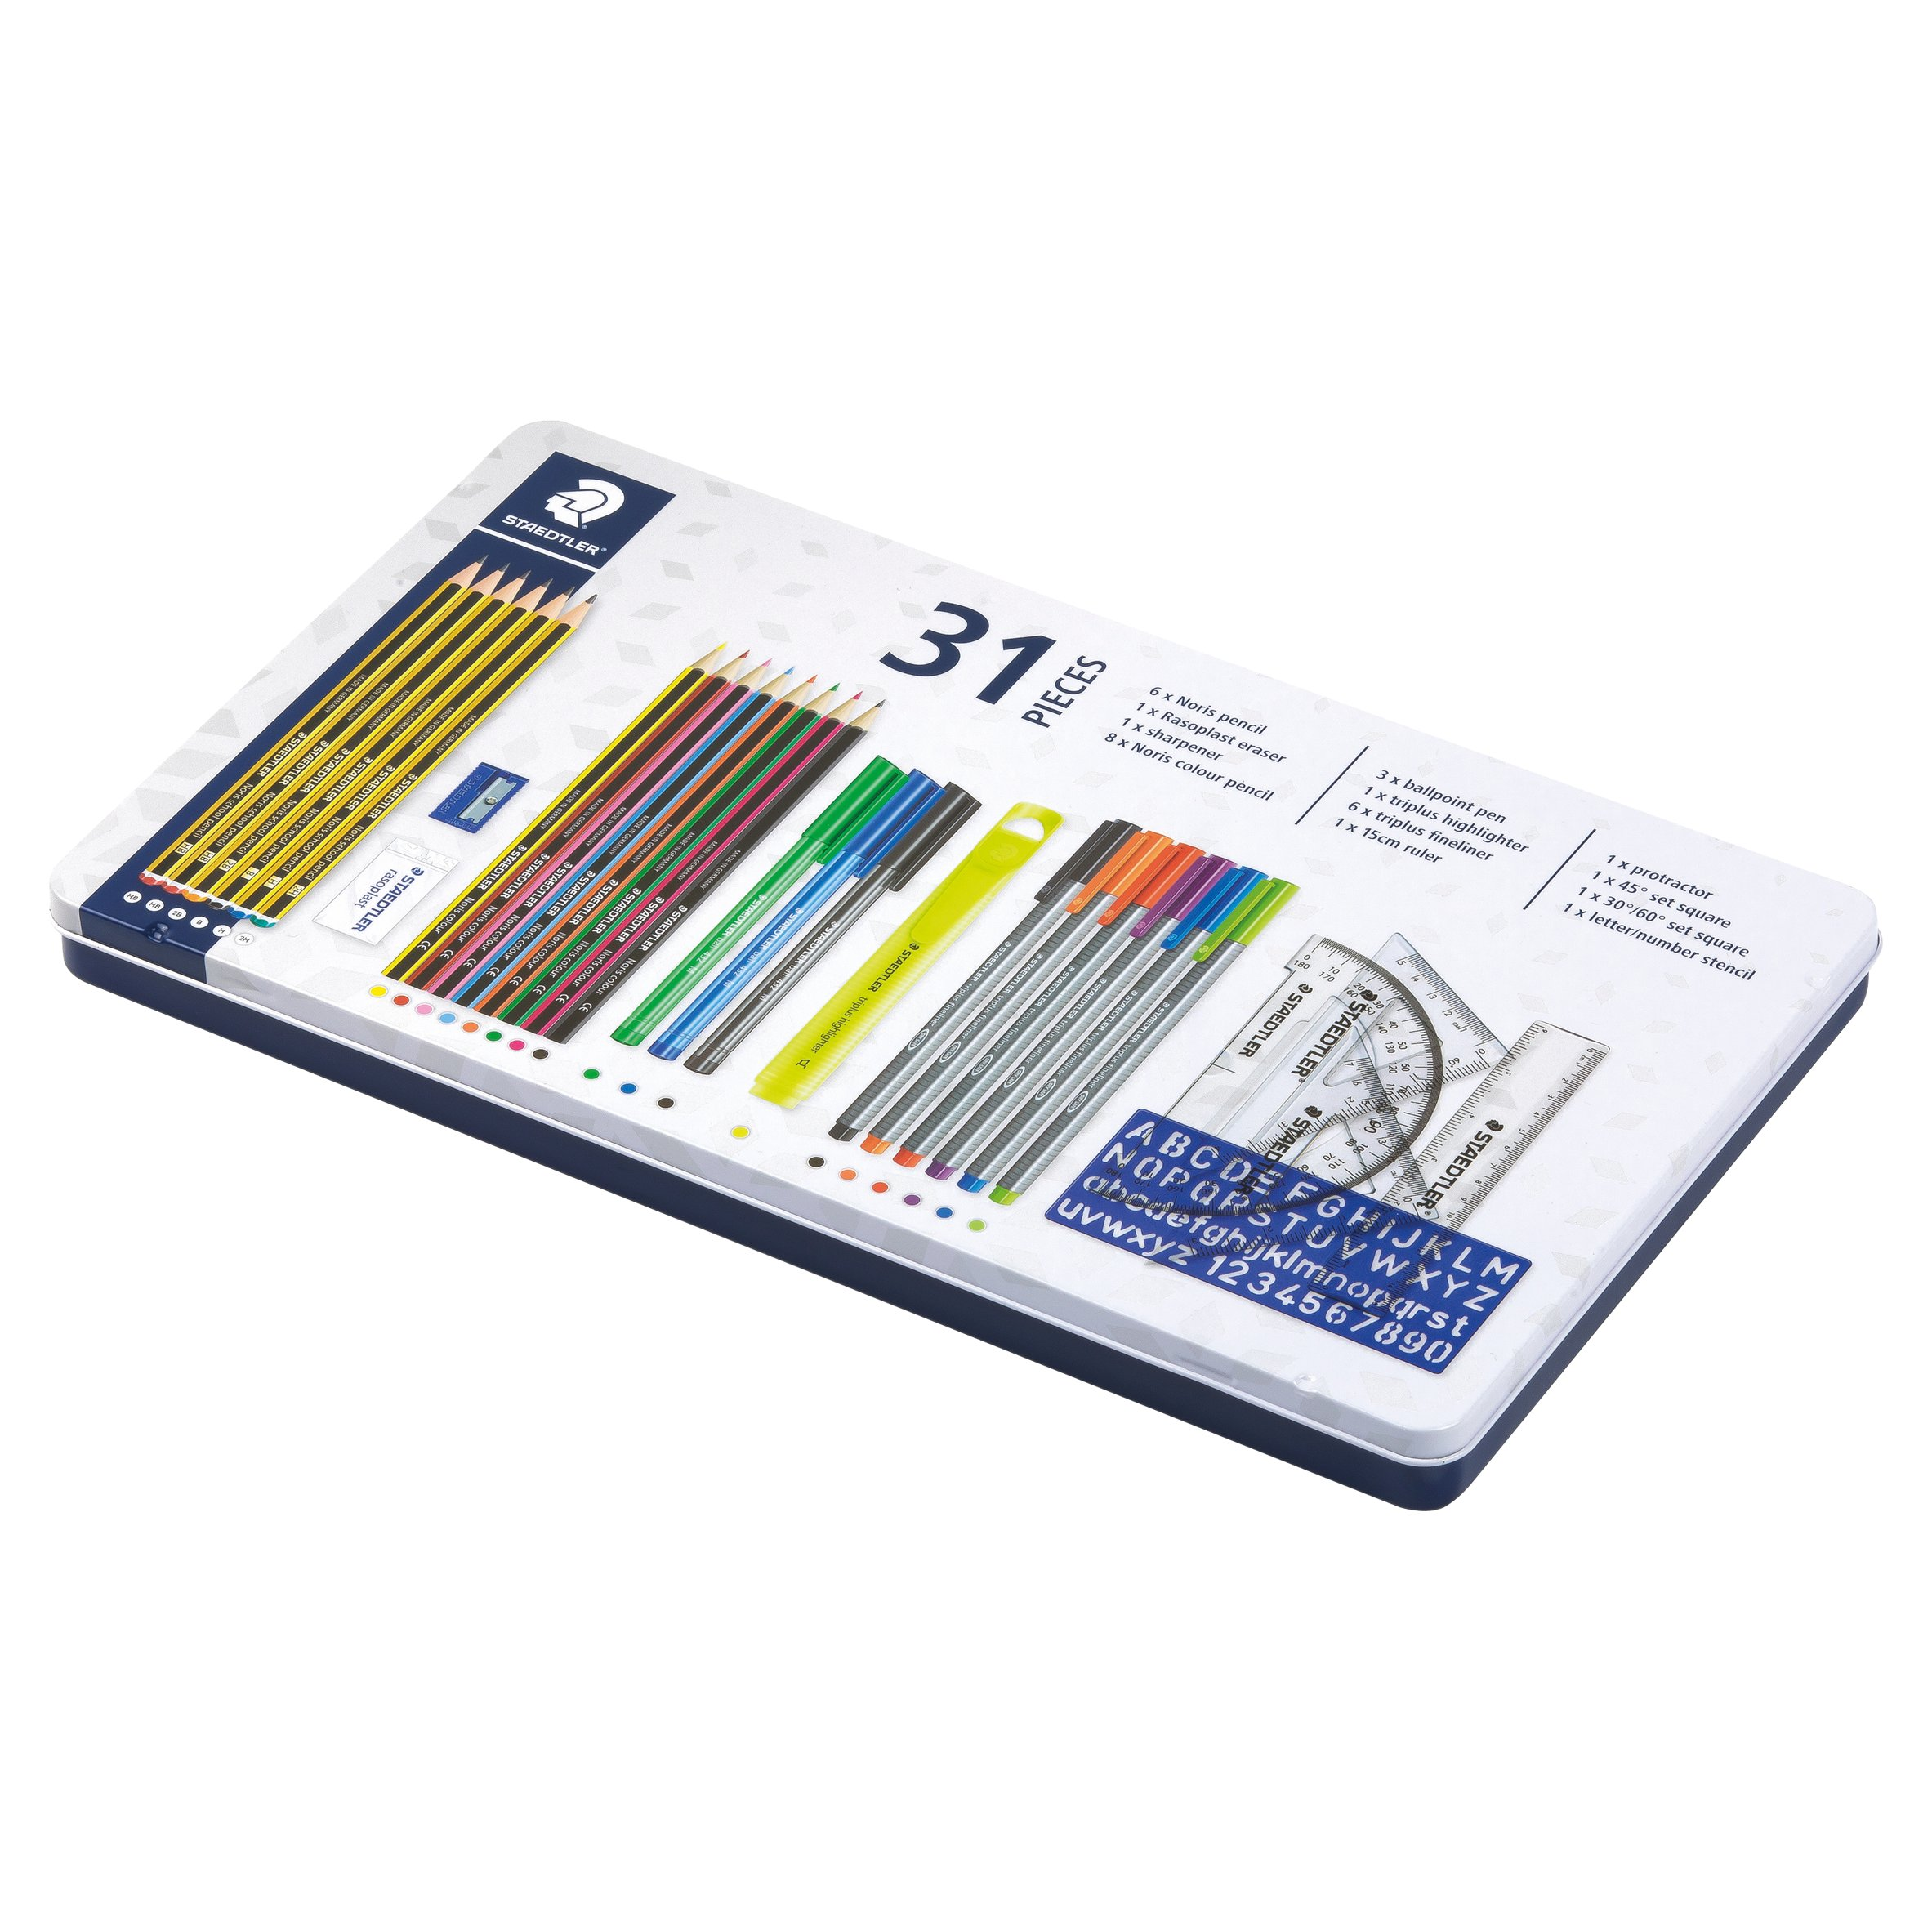 Staedtler Noris Stationary Set